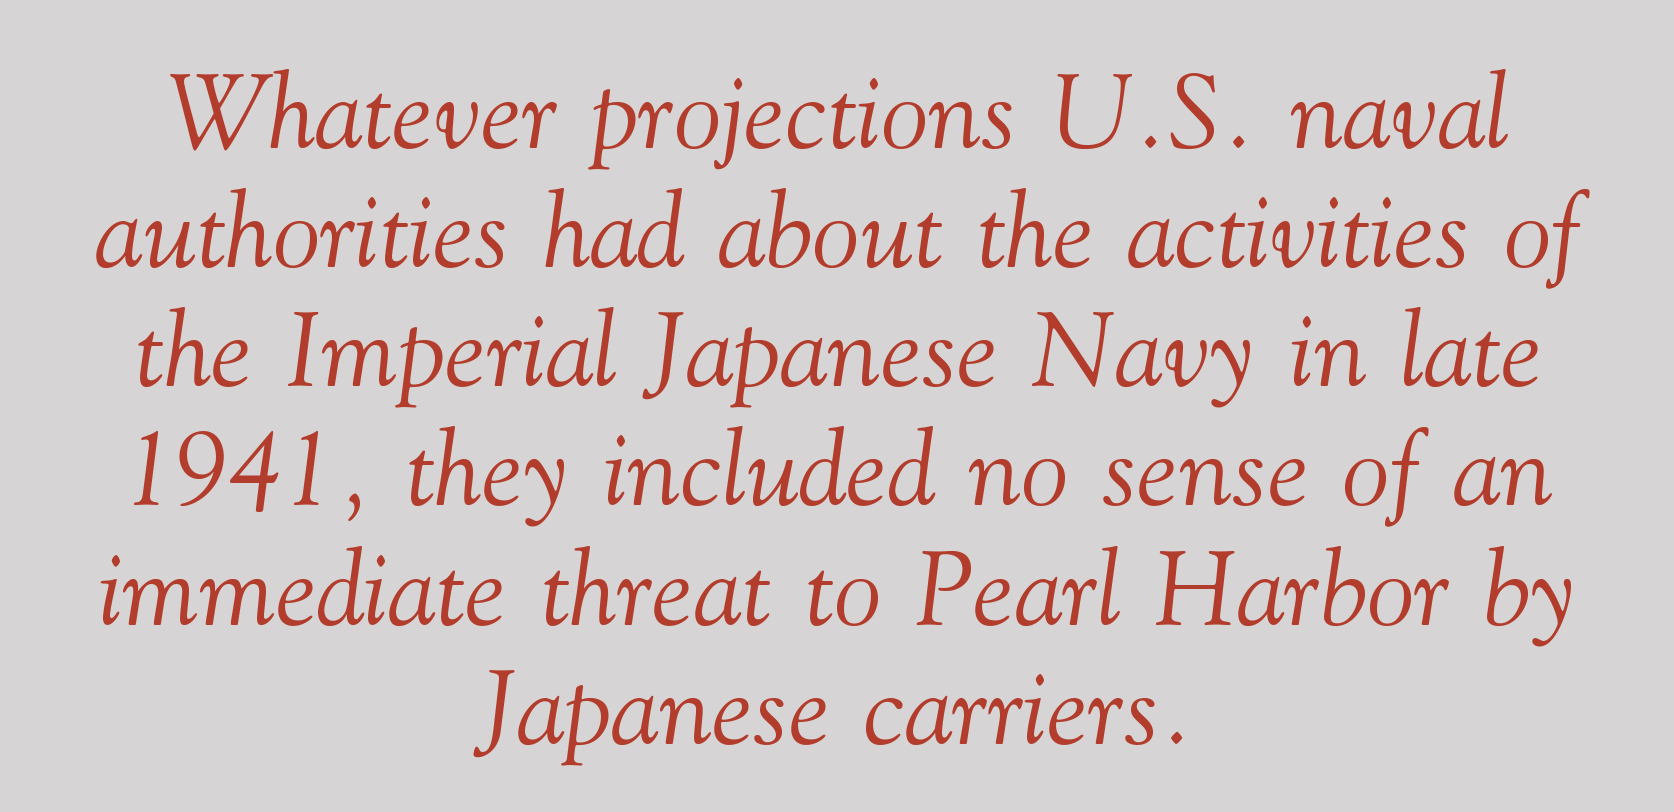 Whatever projections U.S. naval authorities had about the activities of the Imperial Japanese Navy in late 1941, they included no sense of an immediate threat to Pearl Harbor by Japanese carriers.